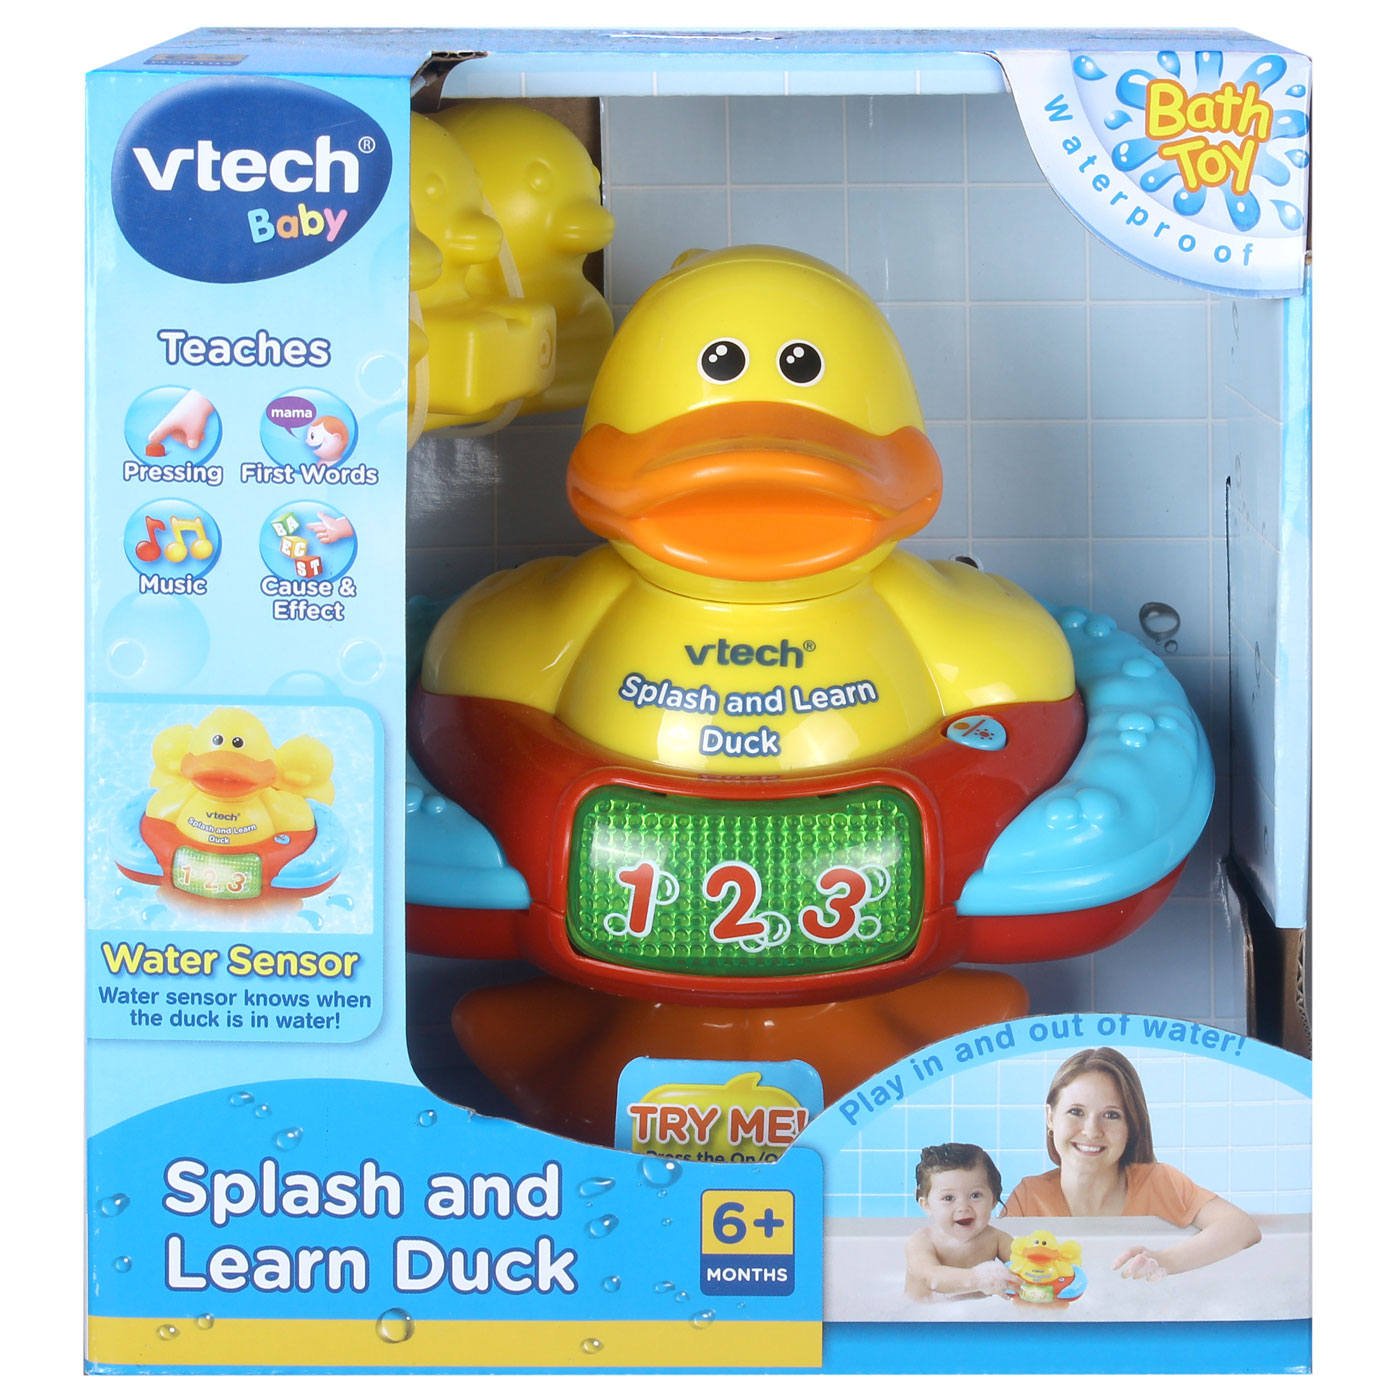 Vtech Bath Toys - Splash and Learn Duck